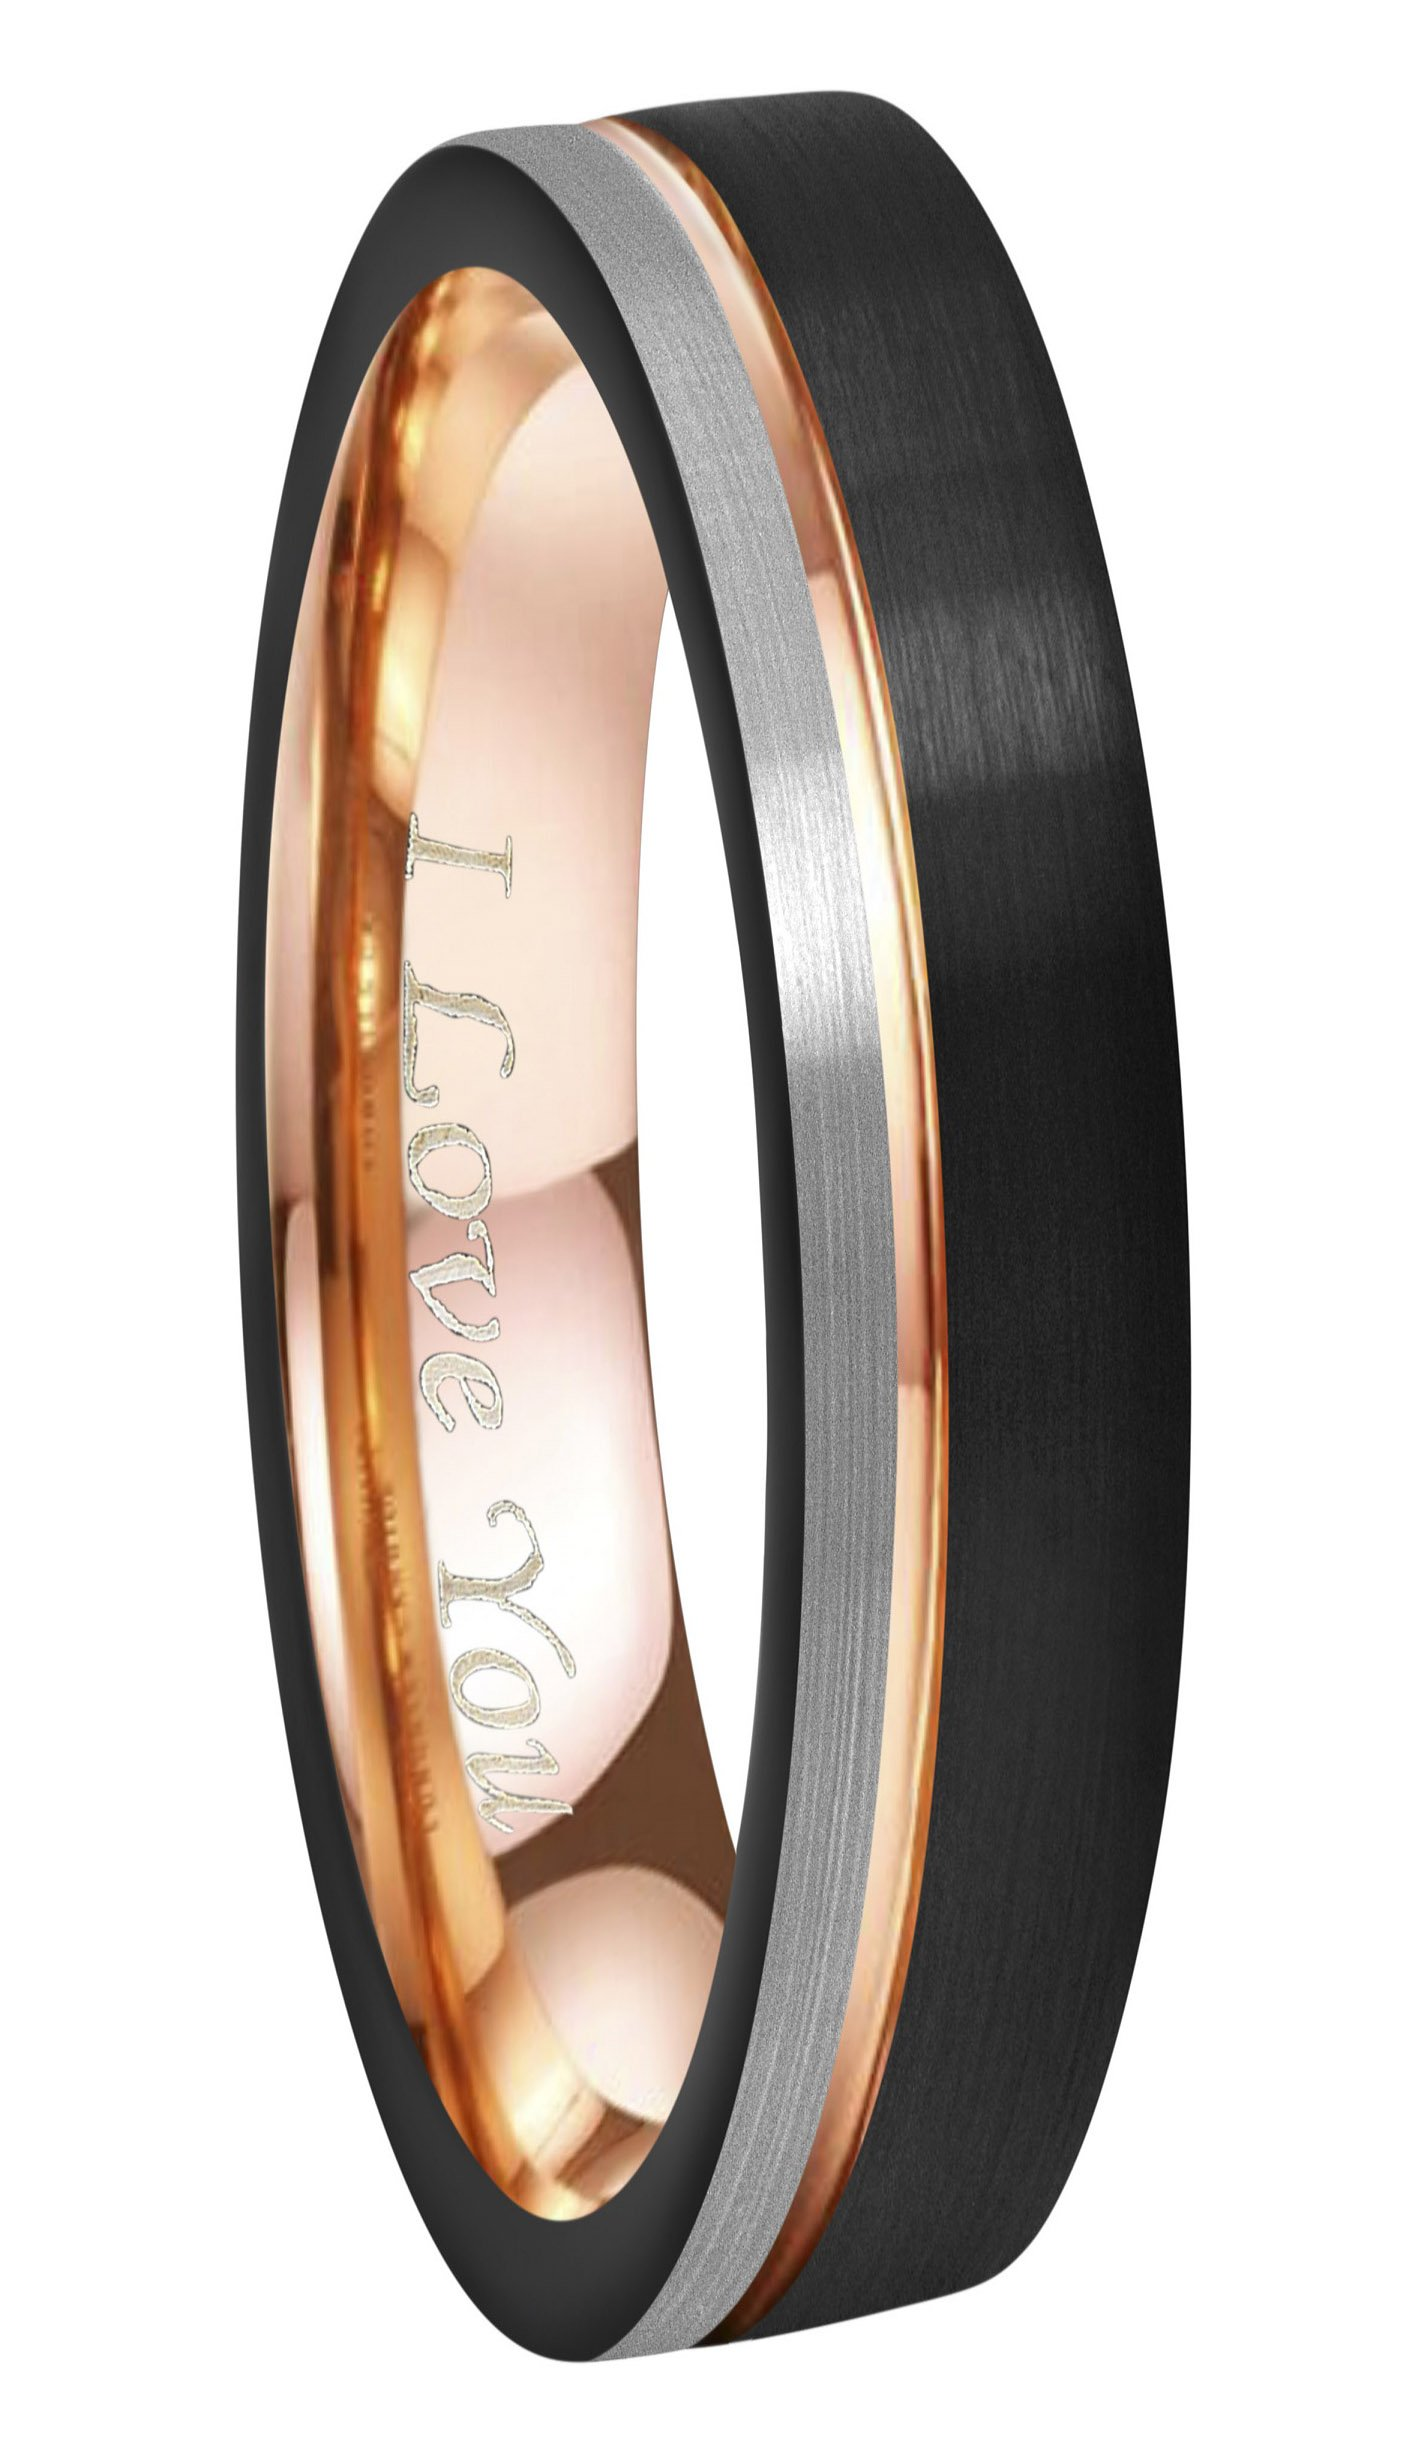 Crownal 6mm/8mm Tungsten Carbide Wedding Rings Men Women Rose Gold Line Ring Black and Silver Brushed Engraved ''I Love You'' Comfort Fit Size 4 To 16 (6mm,10)